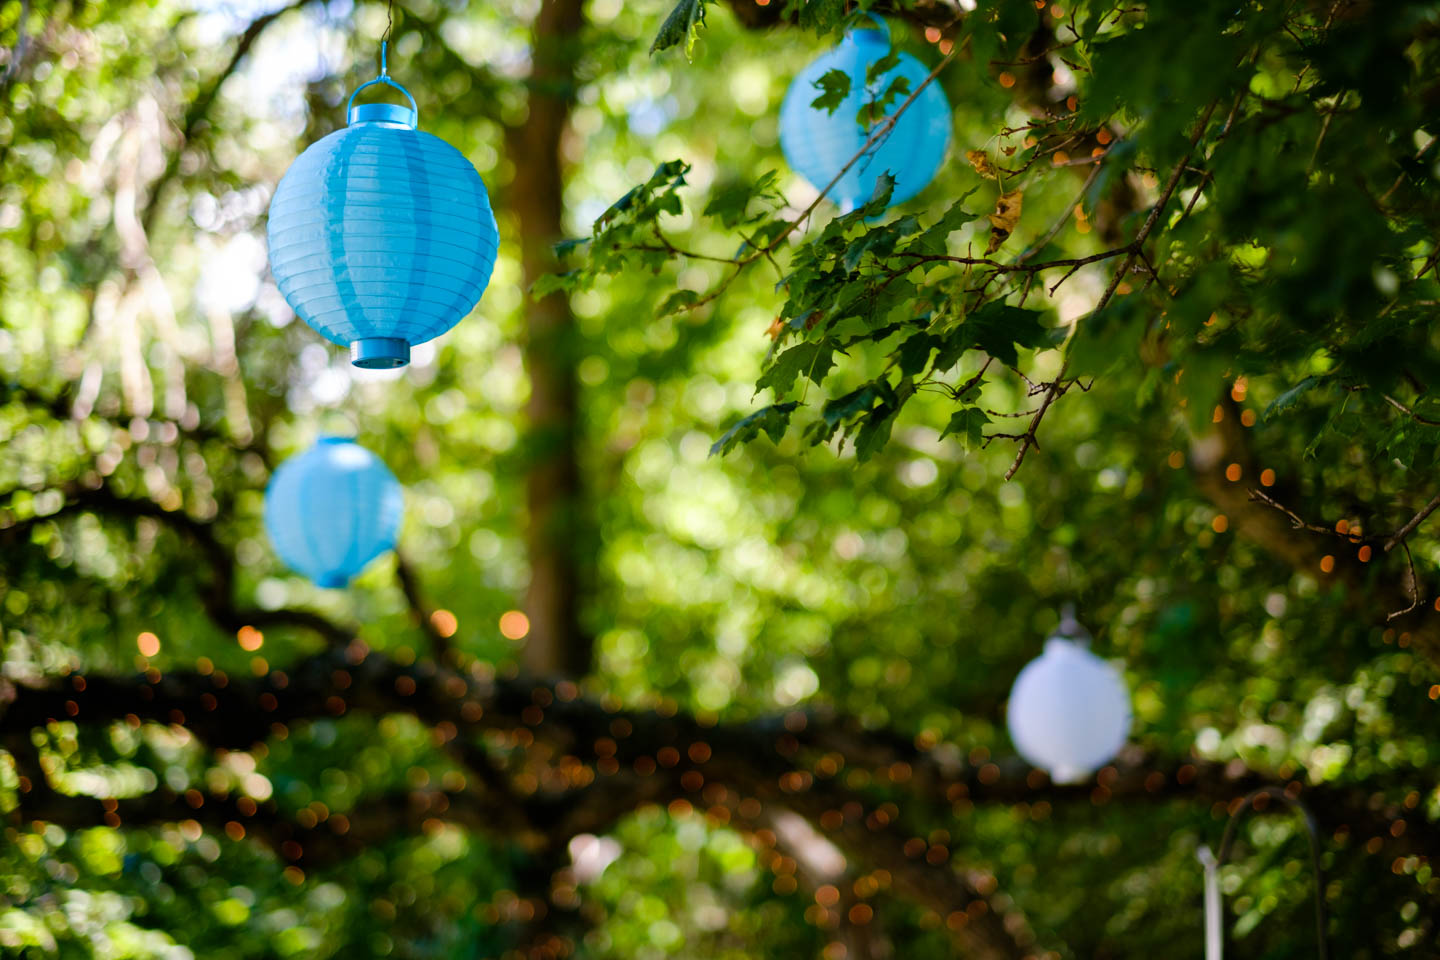 Chinese lanterns in the trees